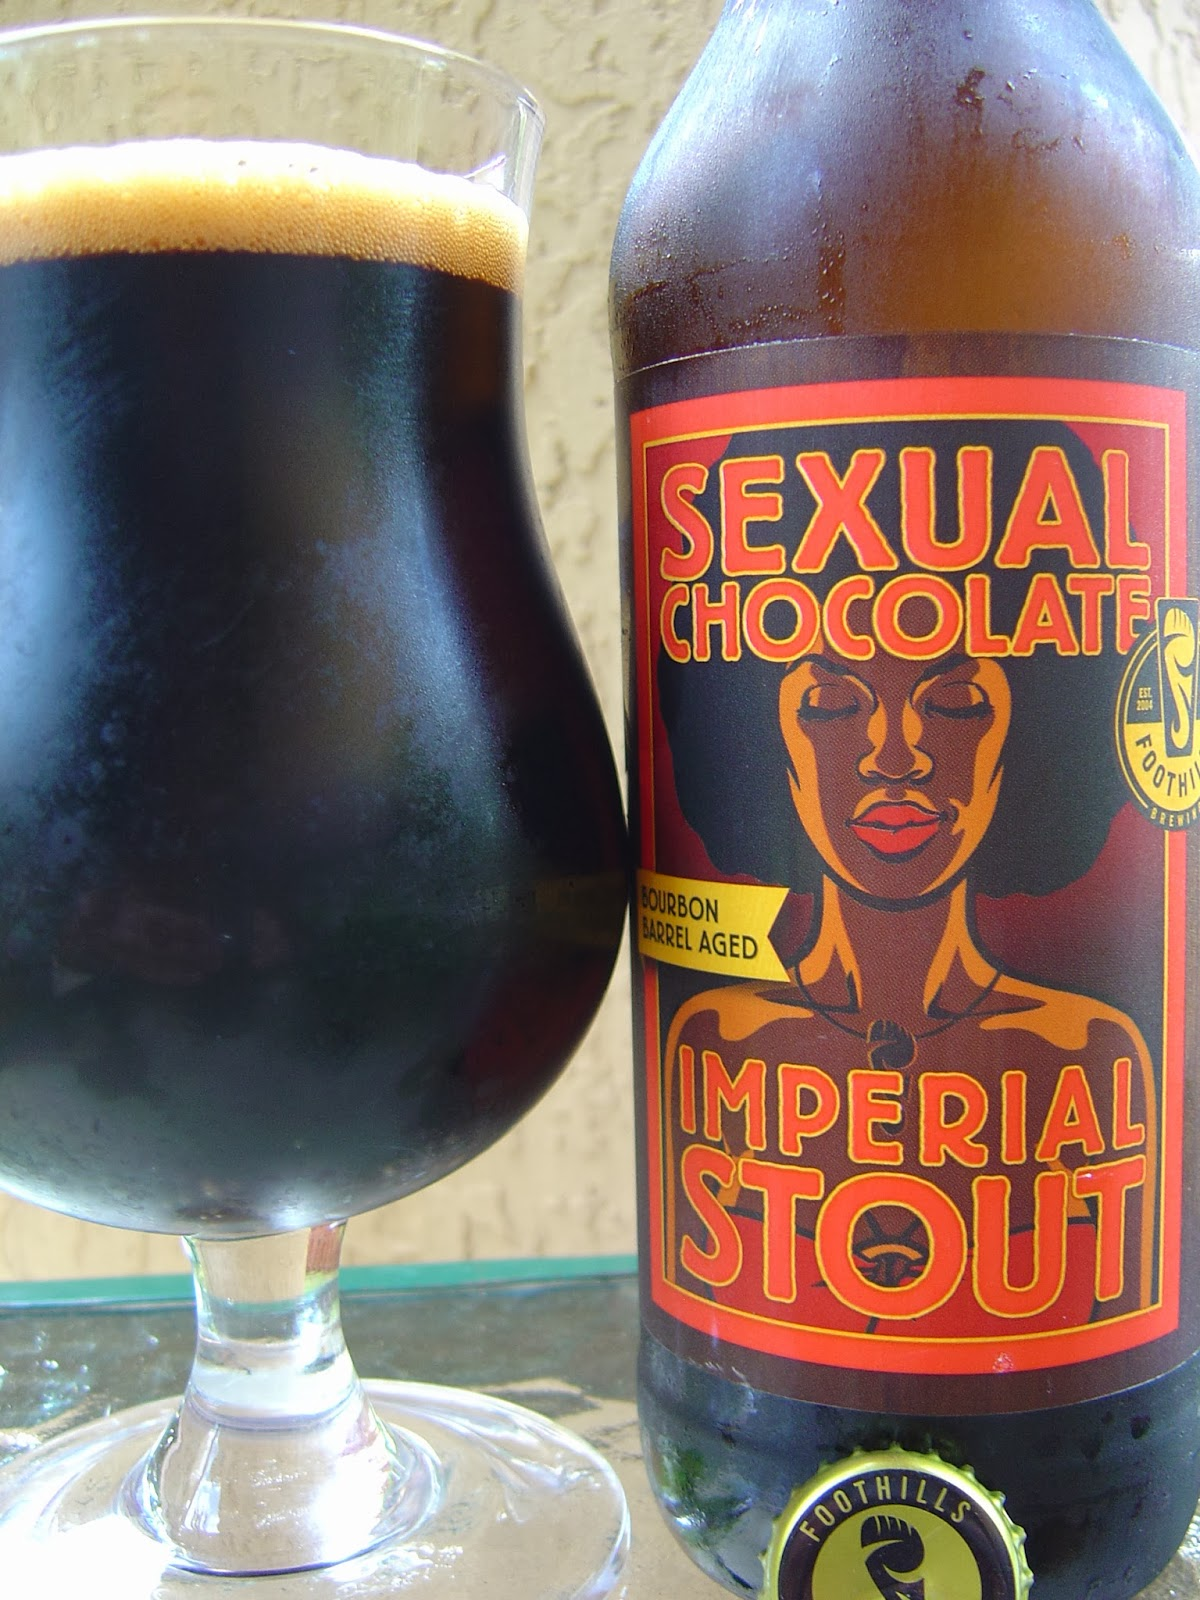 Sexual chocolate beer foothills